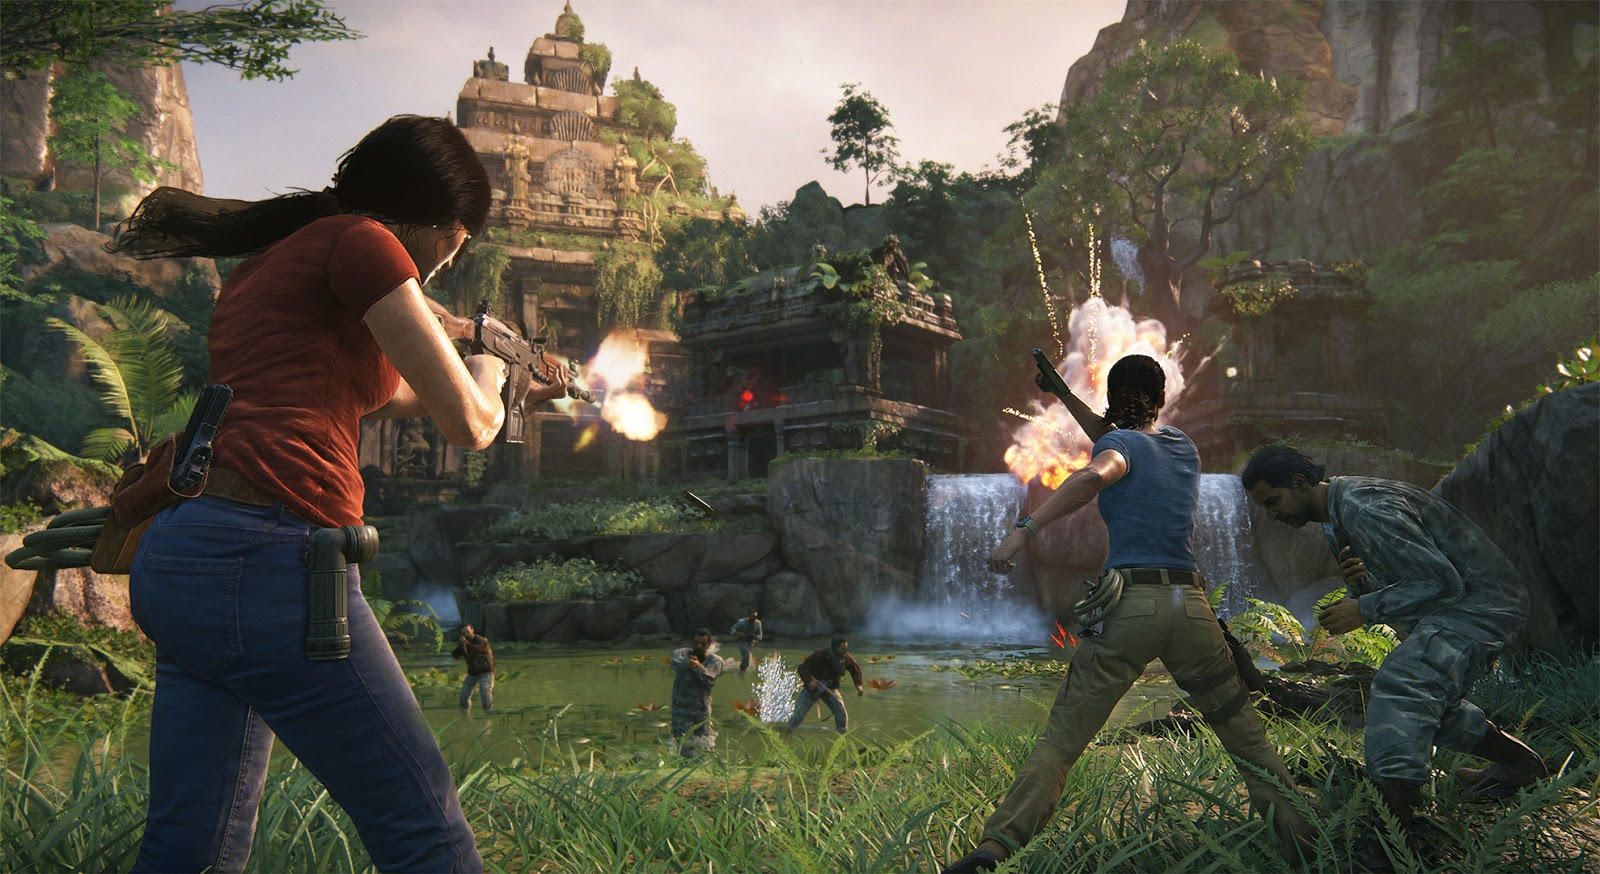 uncharted 1 free download for pc